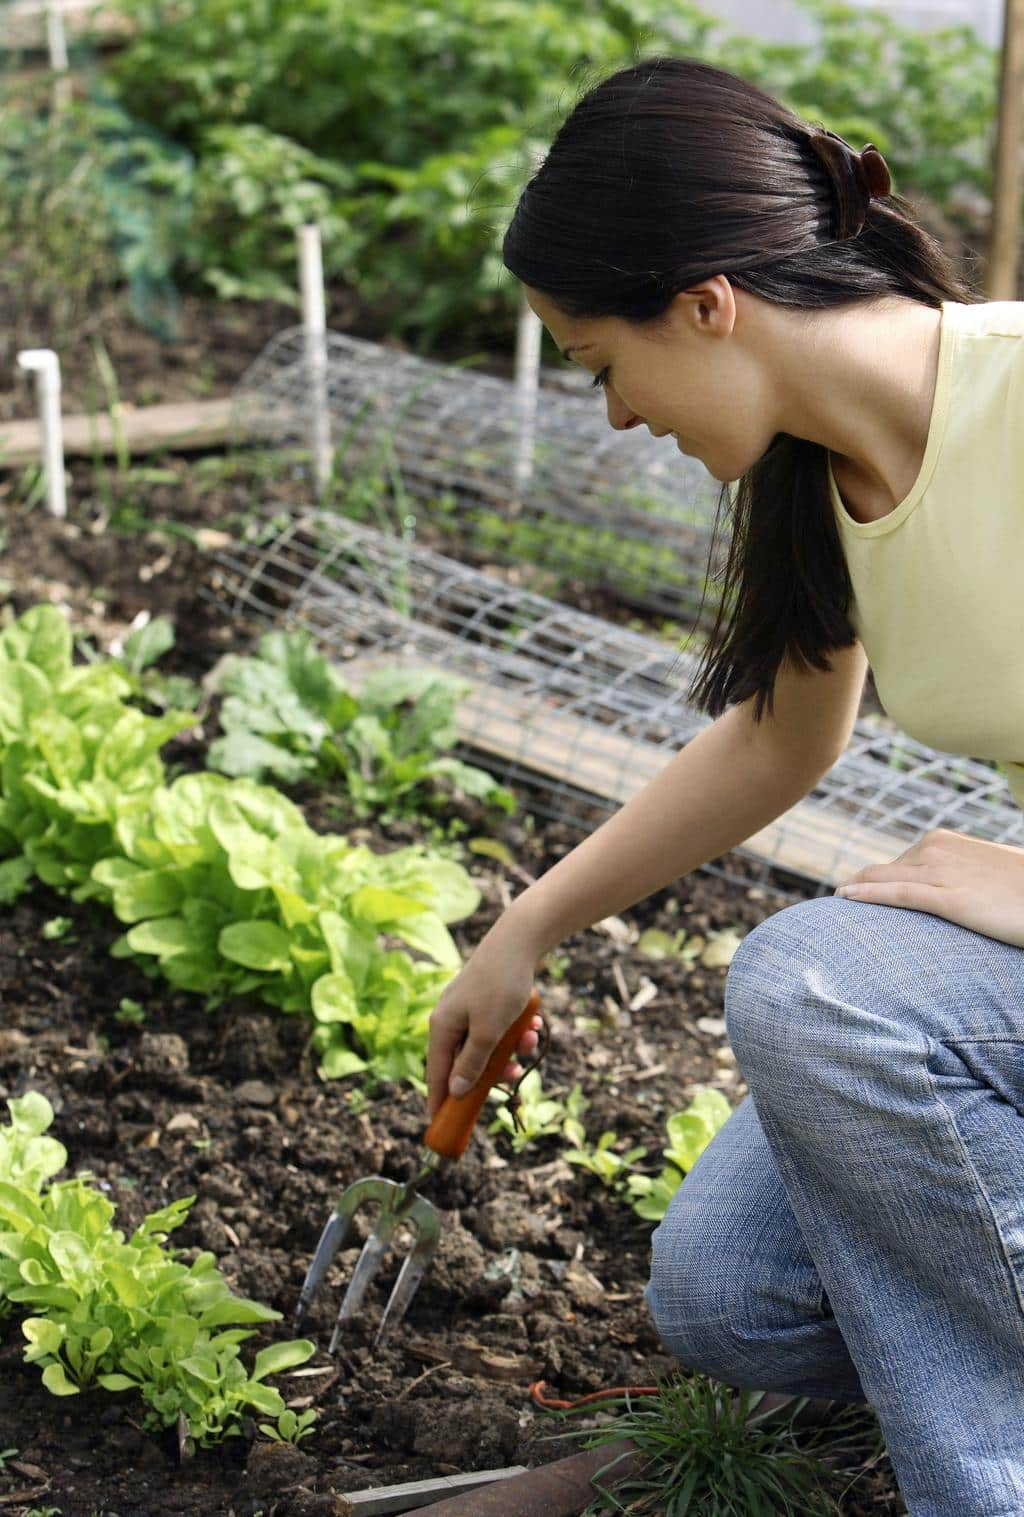 Dr. Raouf Farag – How Caring for a Small and Simple Garden Benefits the Environment at Large